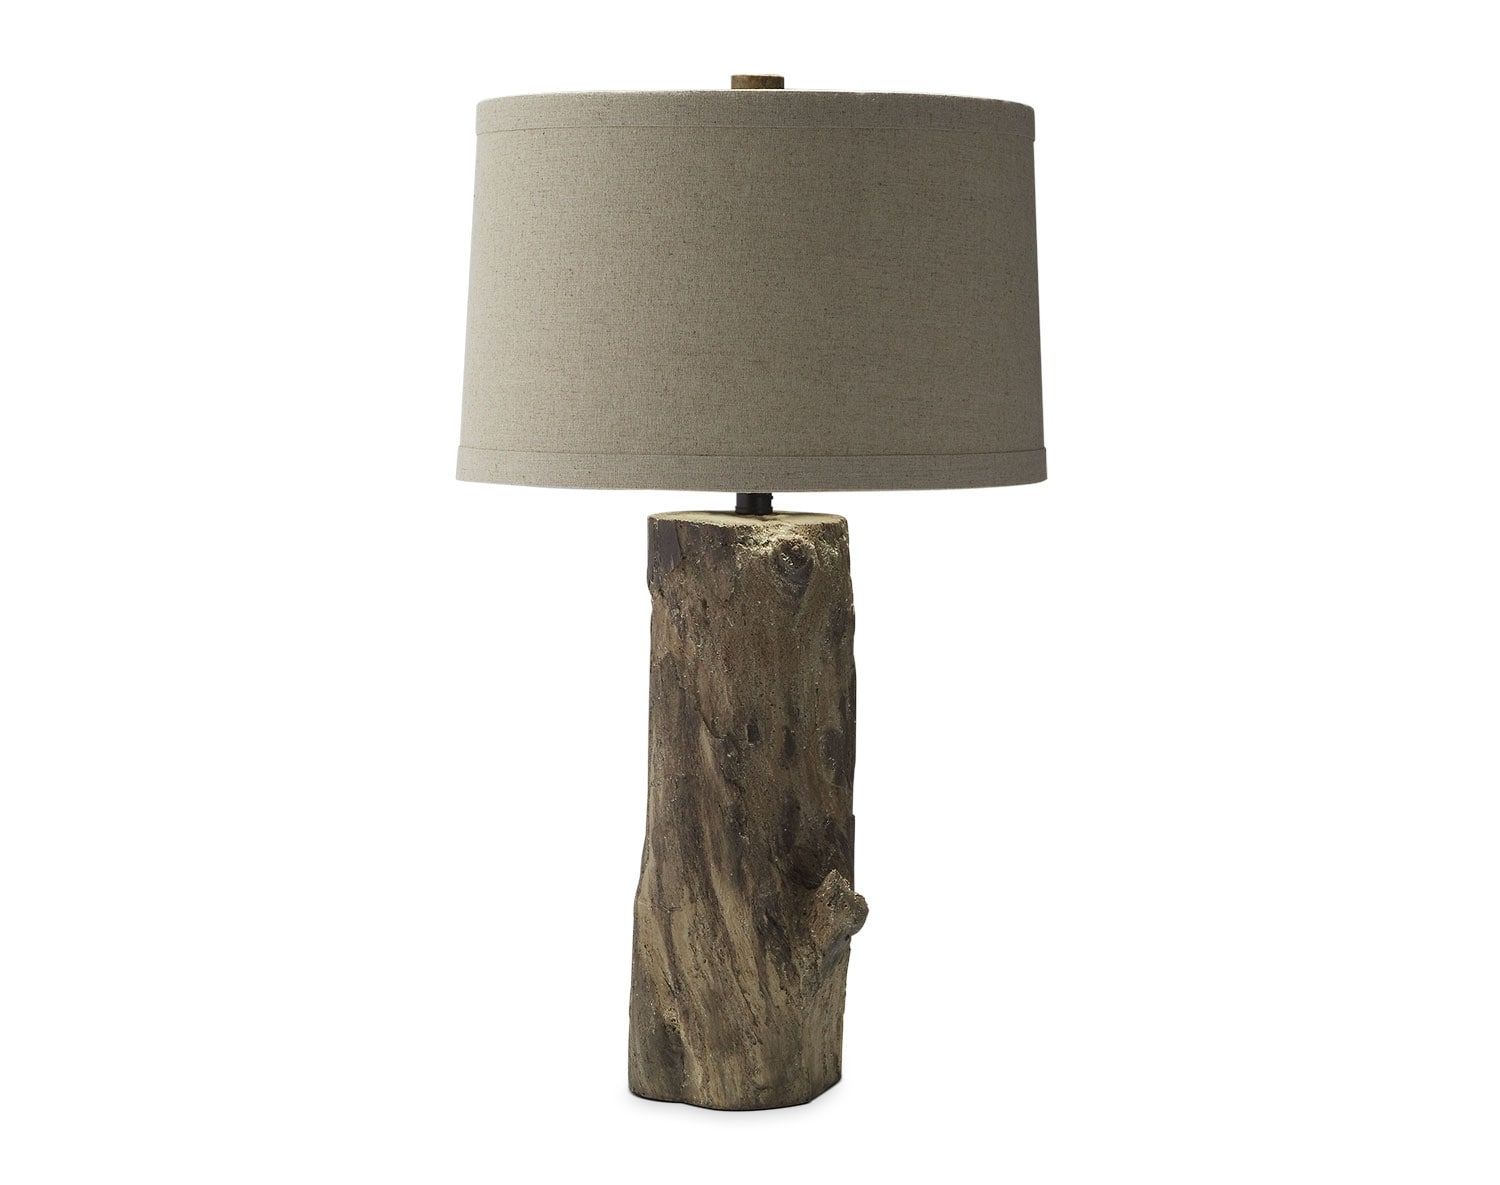 The Faux Wood Stump Collection